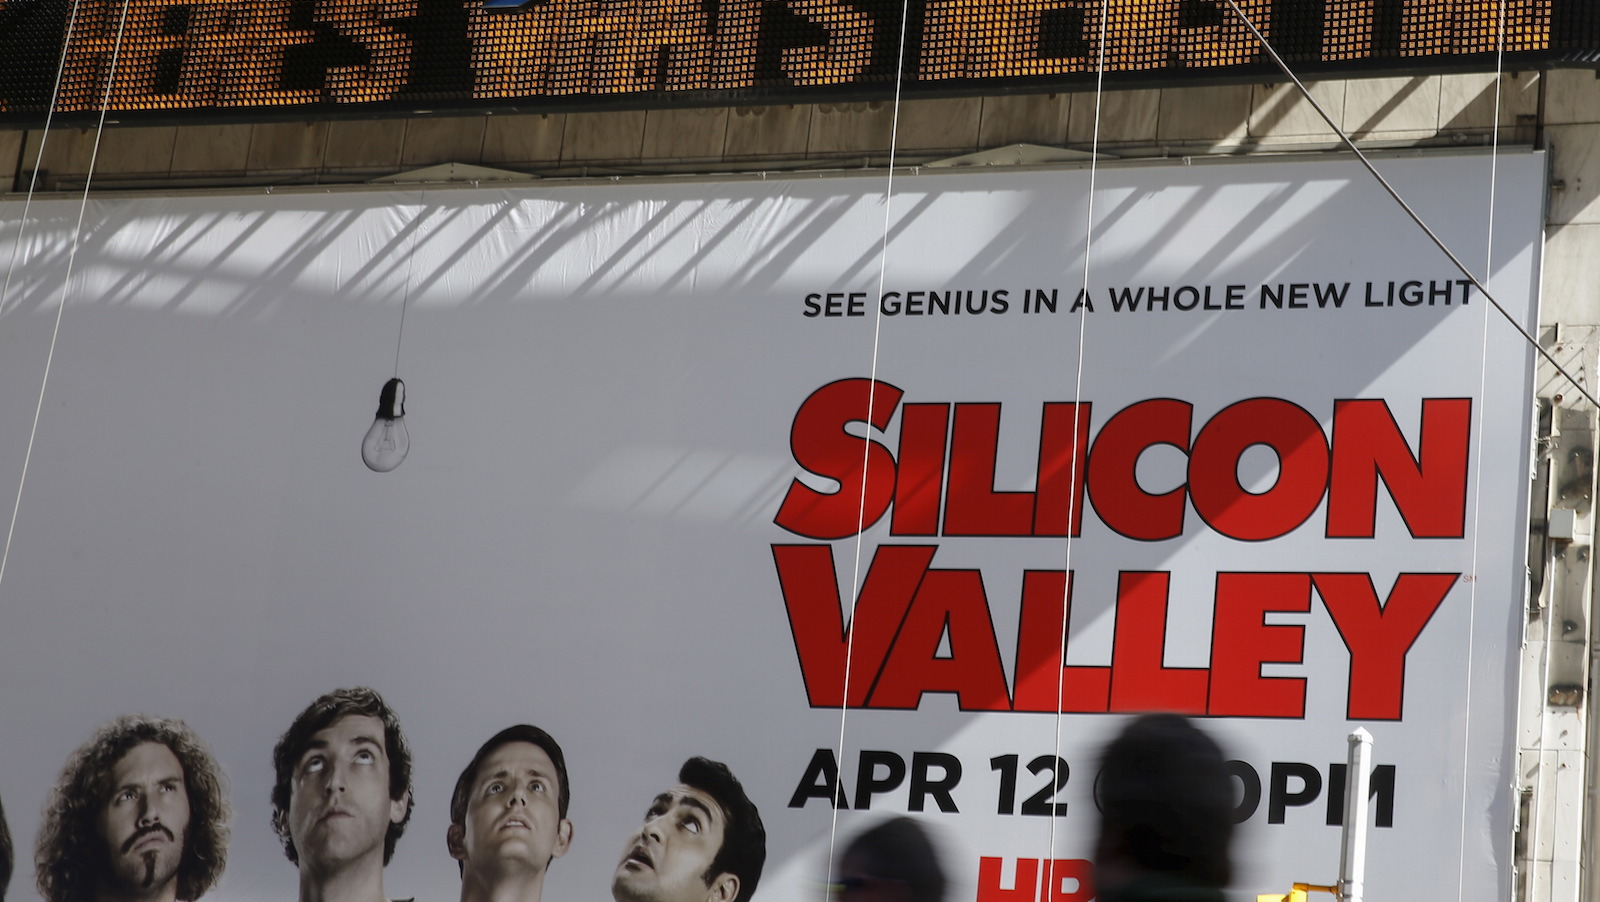 A billboard advertisement for the HBO series Silicon Valley is seen at Times Square in New York March 24, 2015.   REUTERS/Shannon Stapleton   - RTR4UPY1